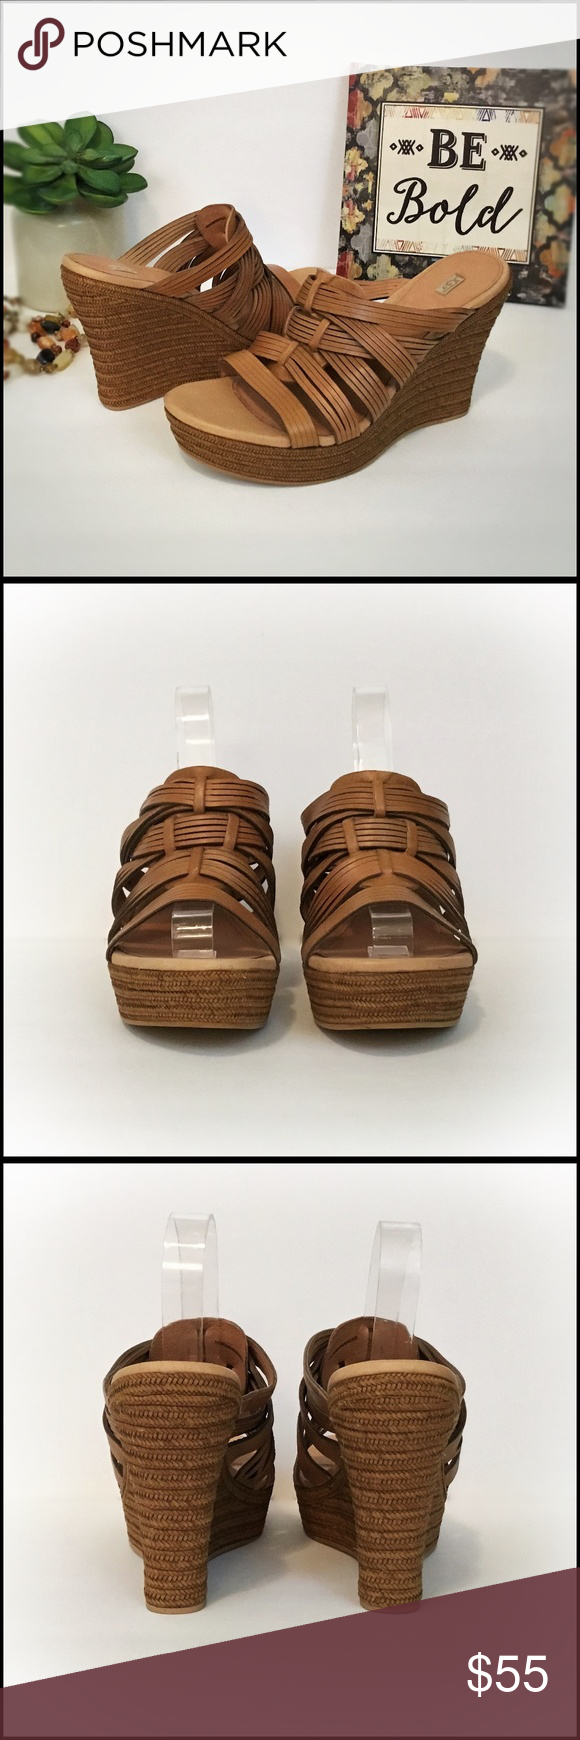 UGG Melinda Leather Wedge Sandal NWOB Ugg Melinda wedge sandal in suntan leather. Features hand woven burnished upper, breathable leather lining and a Plush Poron* foam cushioned footbed.. The jute wrapped midsole sits atop a durable leather-like outsole. Heel height is 4.25 with a 1.5 platform.  (Currently sold on Amazon for 82.99) Imported.  Size 10 UGG Shoes Wedges #shoewedges